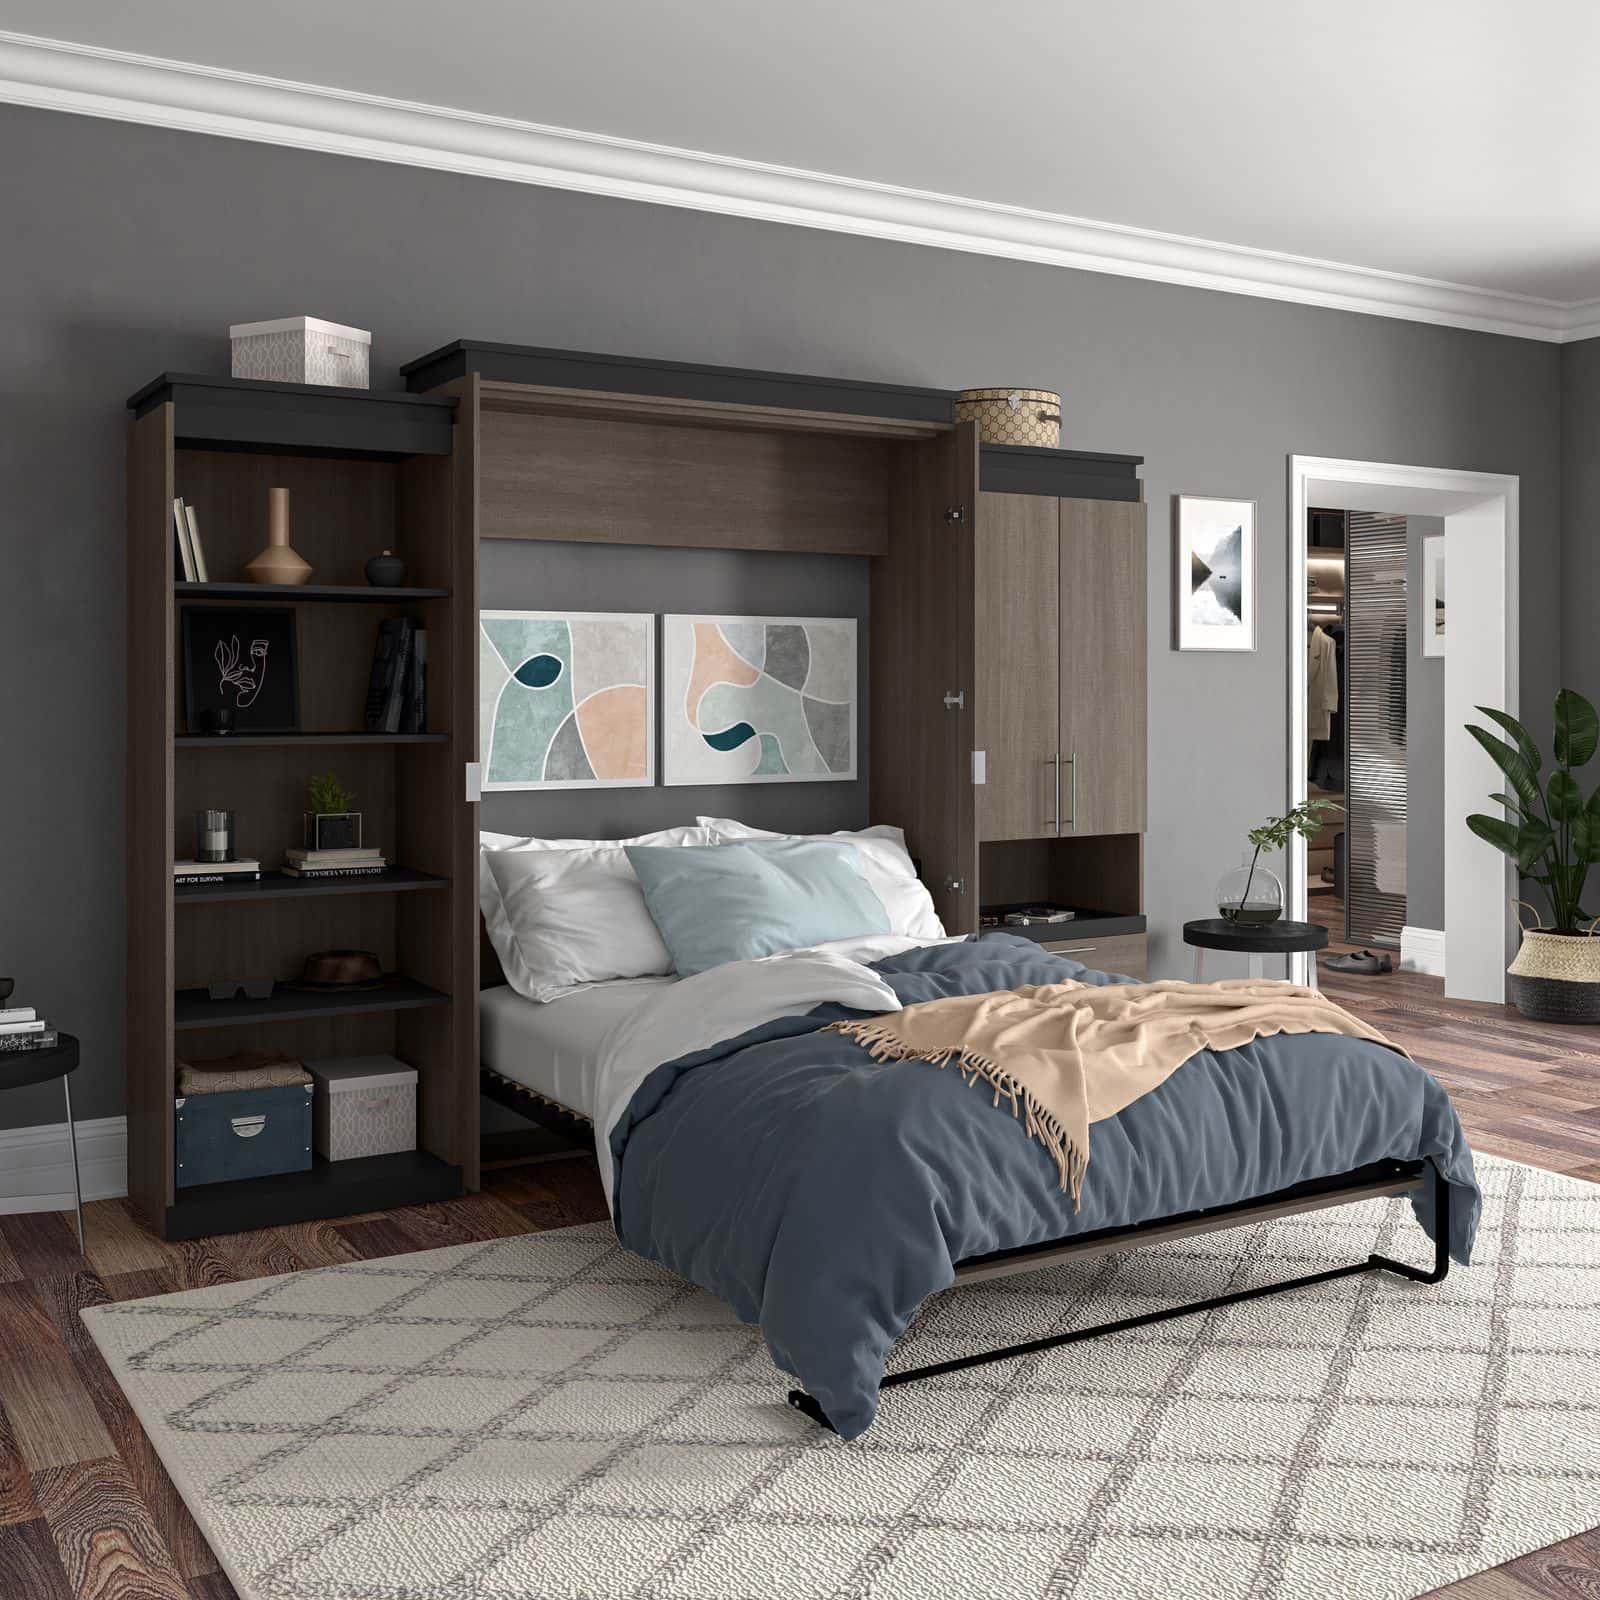 Orion Murphy Bed with storage